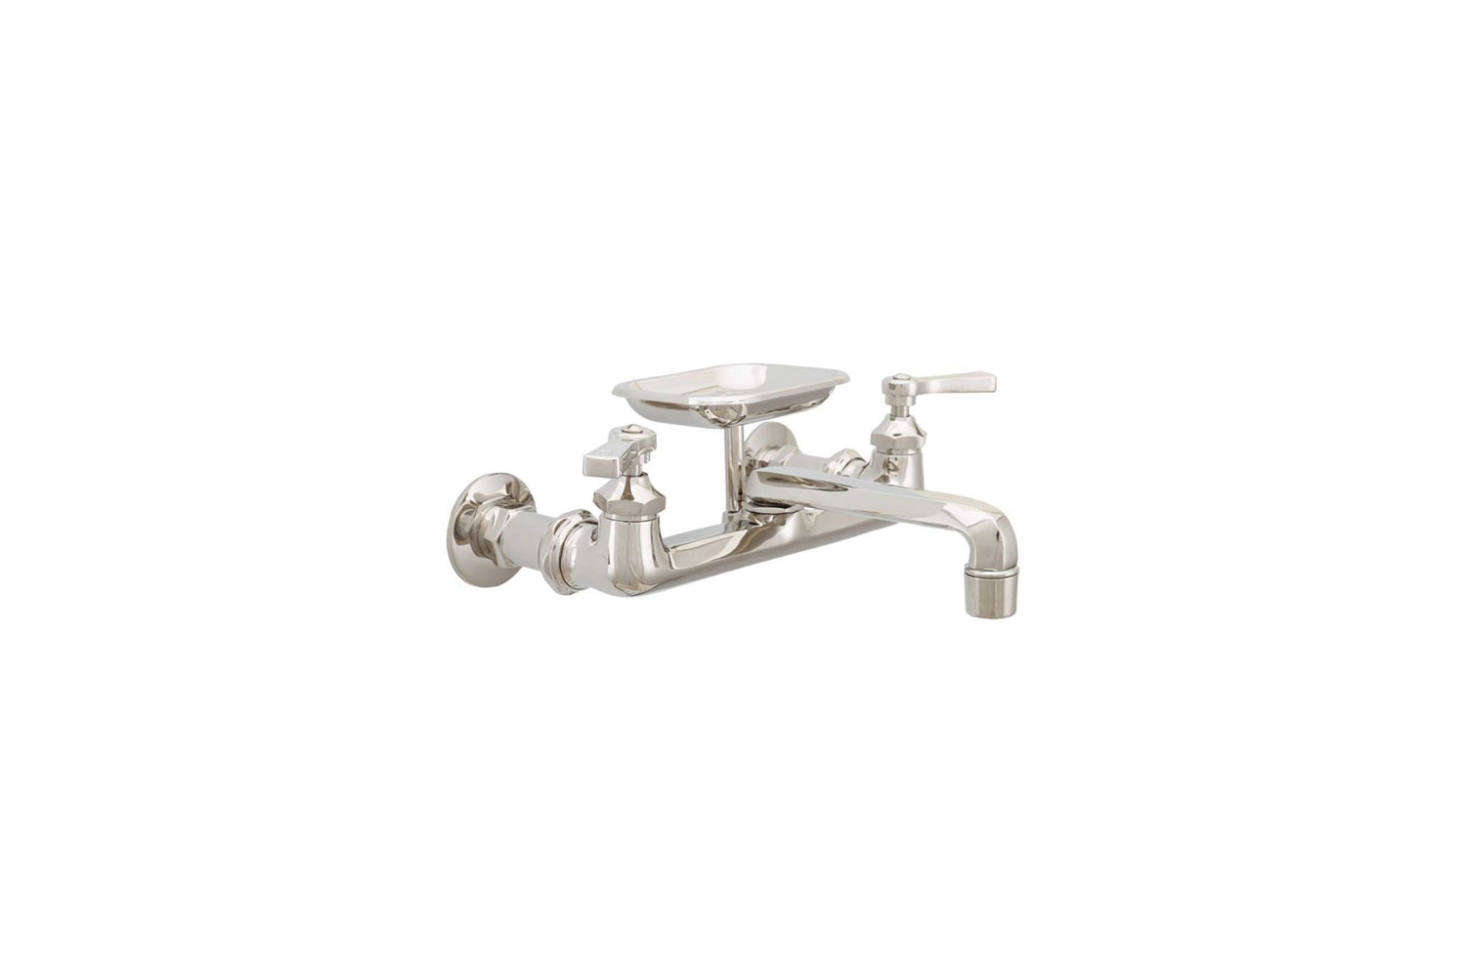 10 Easy Pieces Wall Mounted Kitchen Faucets With Soap Dishes Remodelista